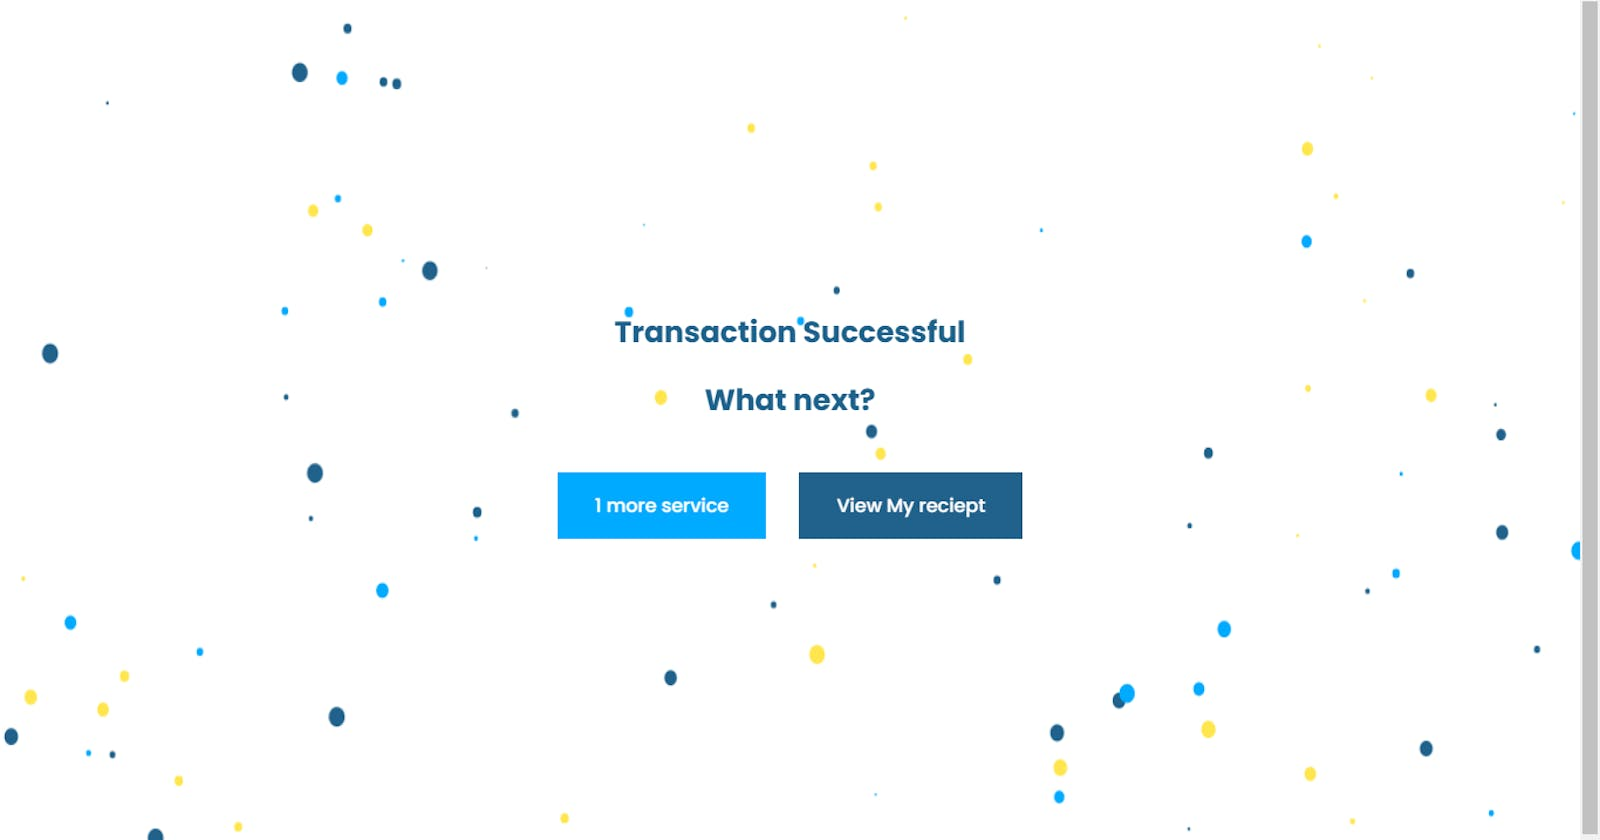 Walking you through my Customer Self-Service website built with HTML, CSS, and JAVASCRIPT with Flutterwave - Payment Gateway.